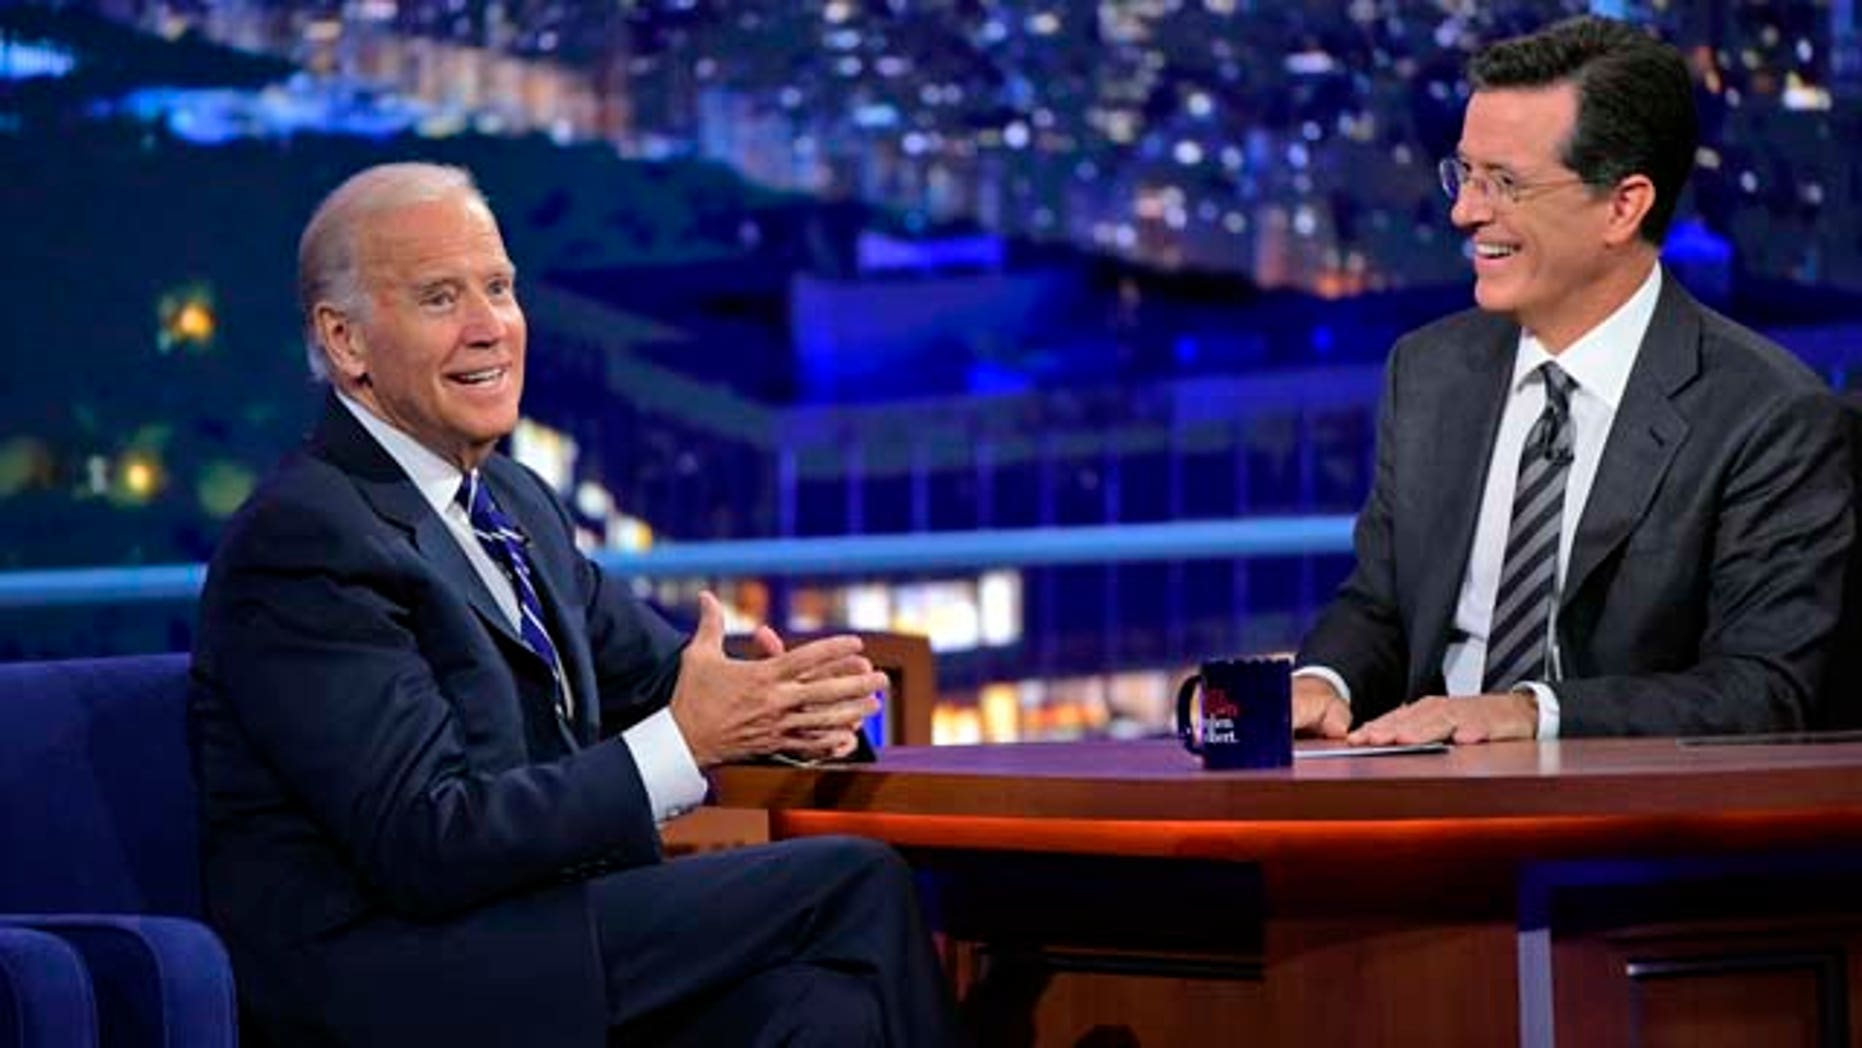 Sept. 10, 2015: In this image released by CBS, host Stephen Colbert, right, smiles as he talks with Vice President Joe Biden during a taping of 'The Late Show with Stephen Colbert,' on Thursday, Sept. 10, 2015 in New York. (John Paul Filo/CBS via AP)